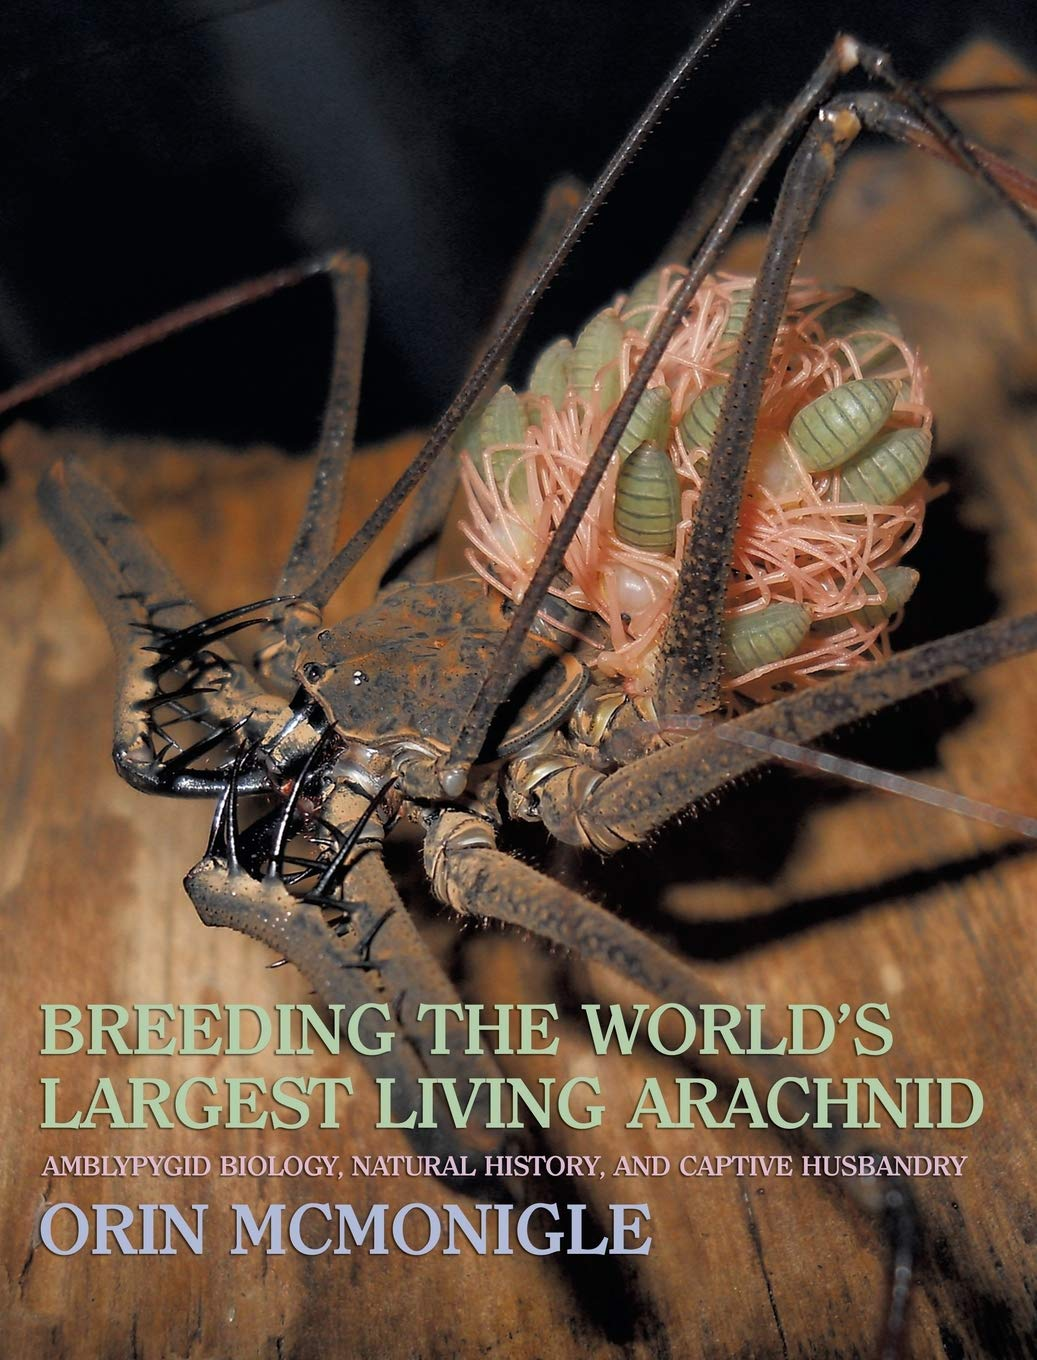 Image OfBreeding The World's Largest Living Arachnid: Amblypygid (Whipspider) Biology, Natural History, And Captive Husbandry